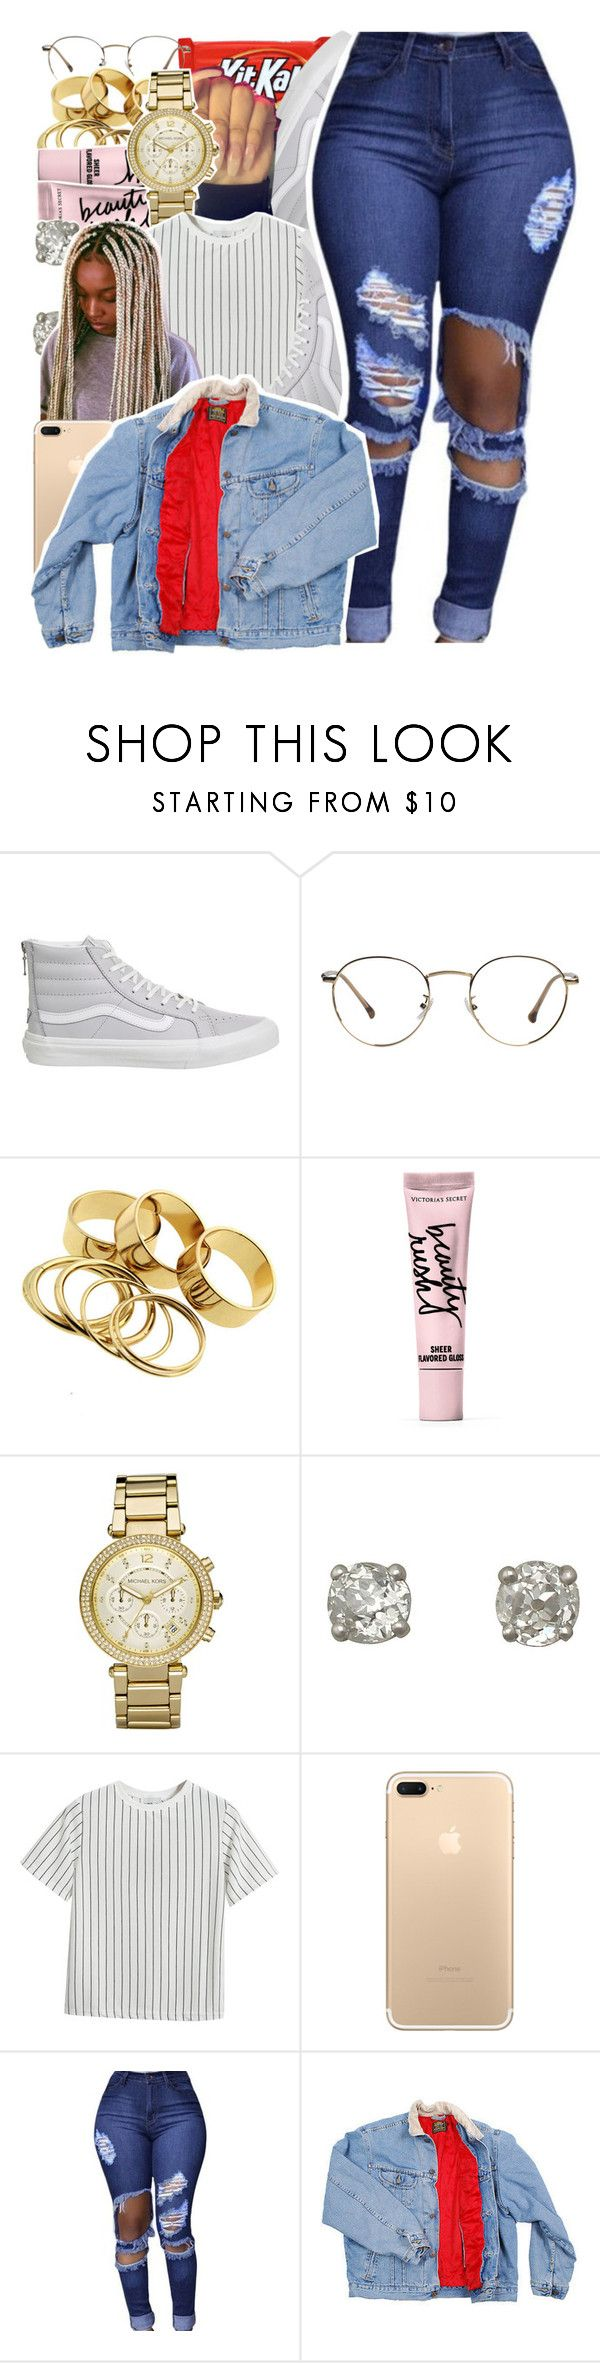 """""""jean jacket contest"""" by danny-baby-xoxo ❤ liked on Polyvore featuring Vans, Beauty Rush, Michael Kors, Chicnova Fashion and Lee"""